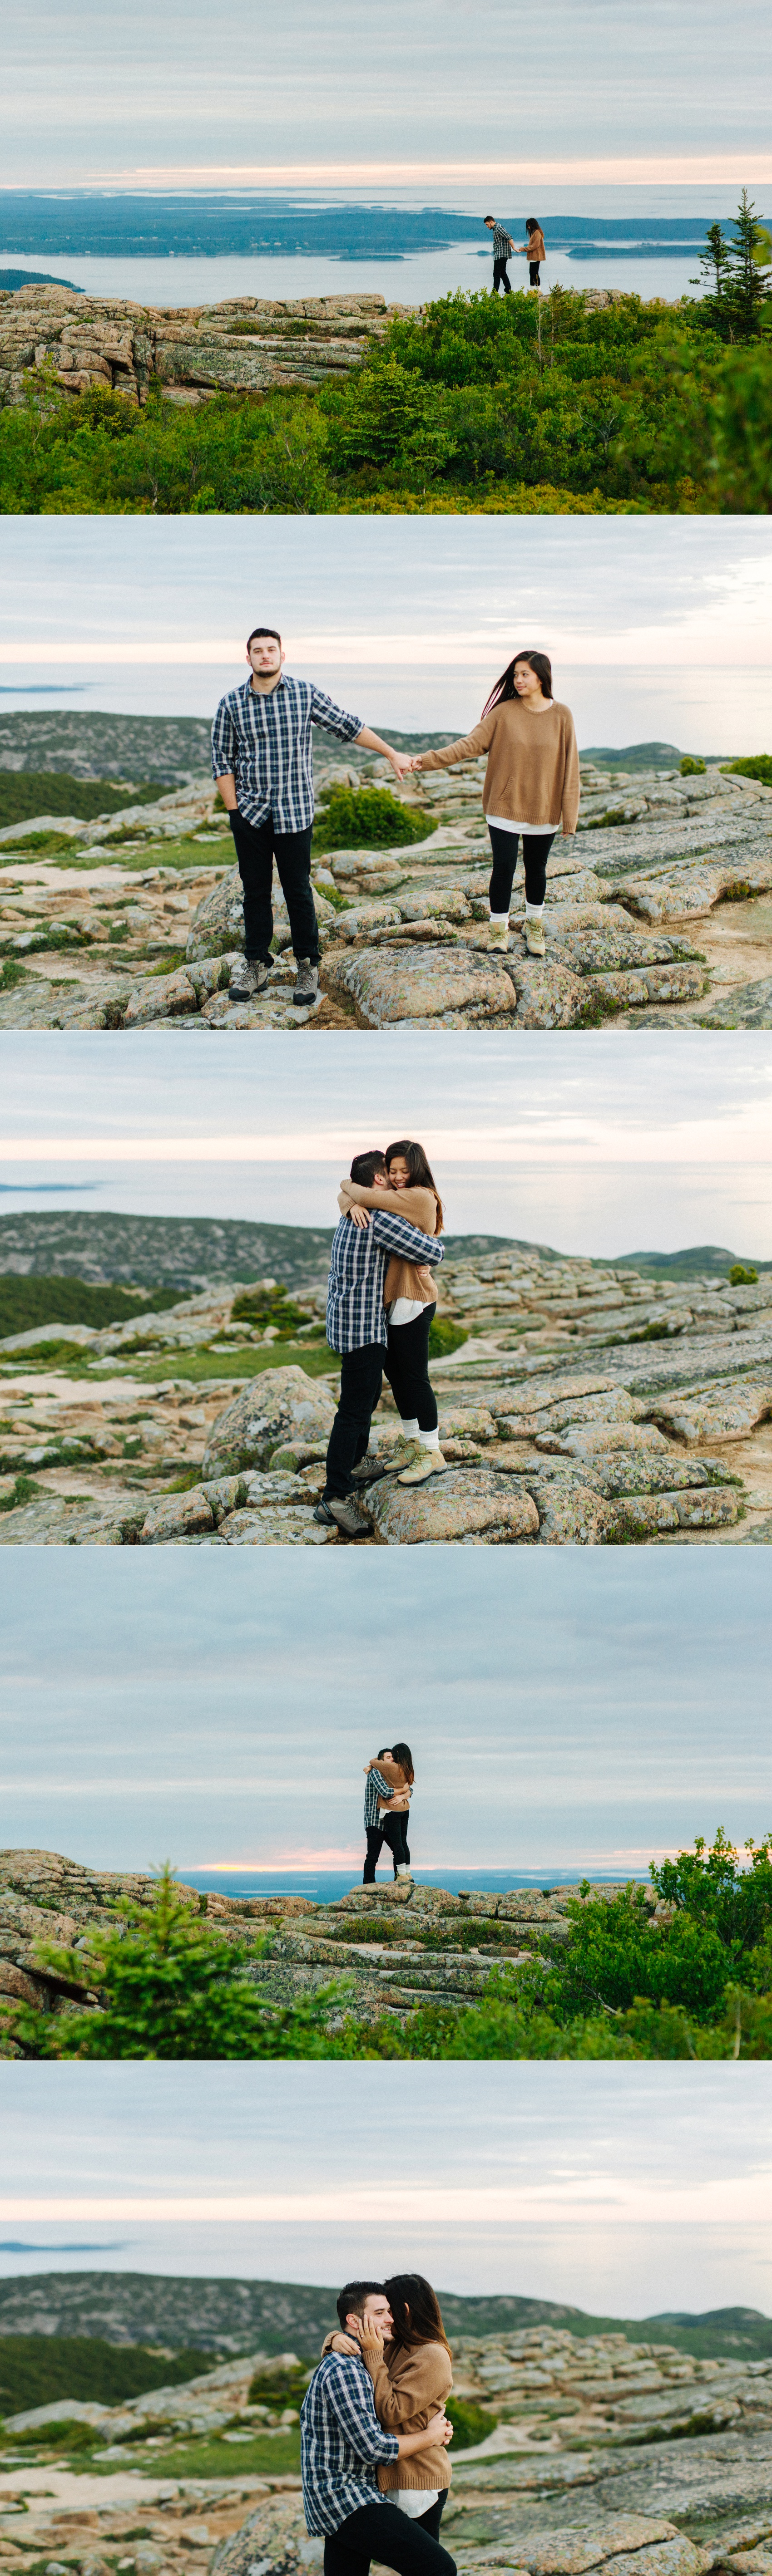 jake and jill acacdia national park engagement session cadillac mountain engagement session jordan pond engagement session maine engagement session jake and katie_0006